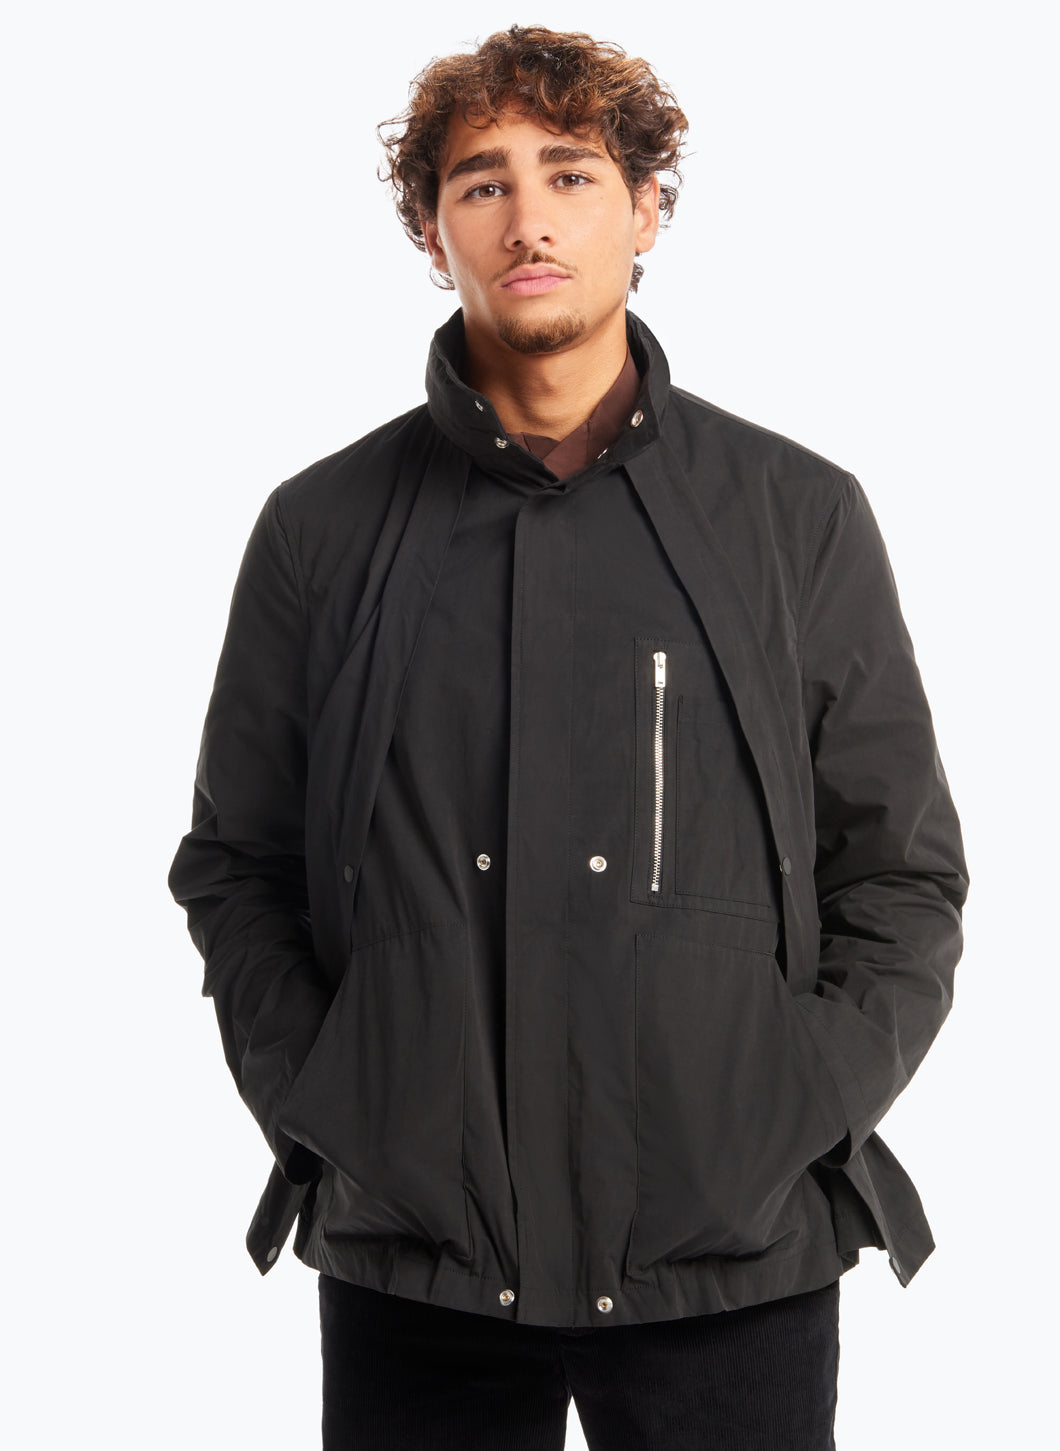 Parka with Hidden Pockets in Black Microfiber